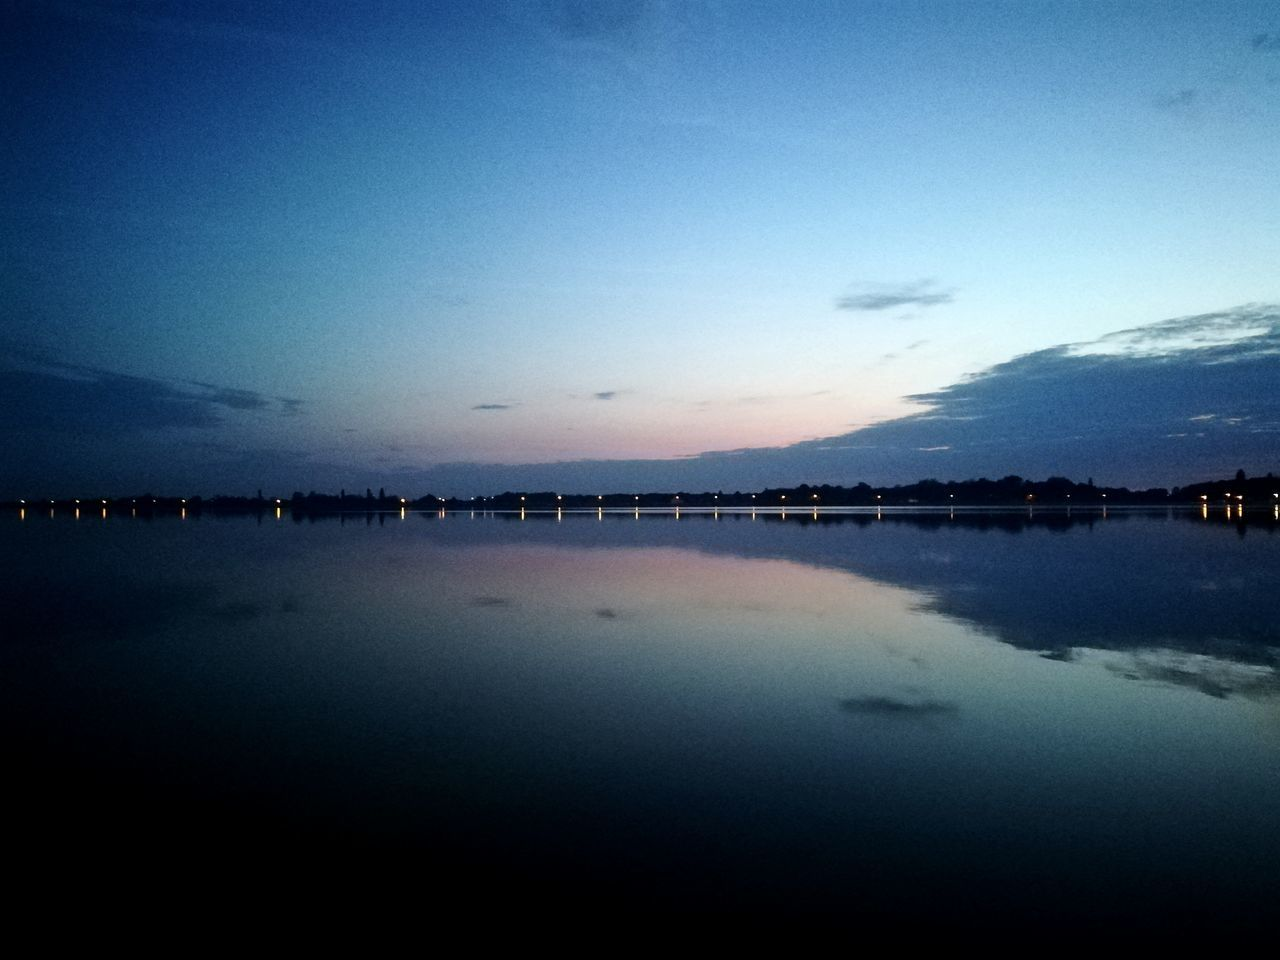 sky, water, tranquil scene, reflection, scenics, tranquility, blue, beauty in nature, dusk, nature, sunset, silhouette, outdoors, no people, lake, cloud - sky, day